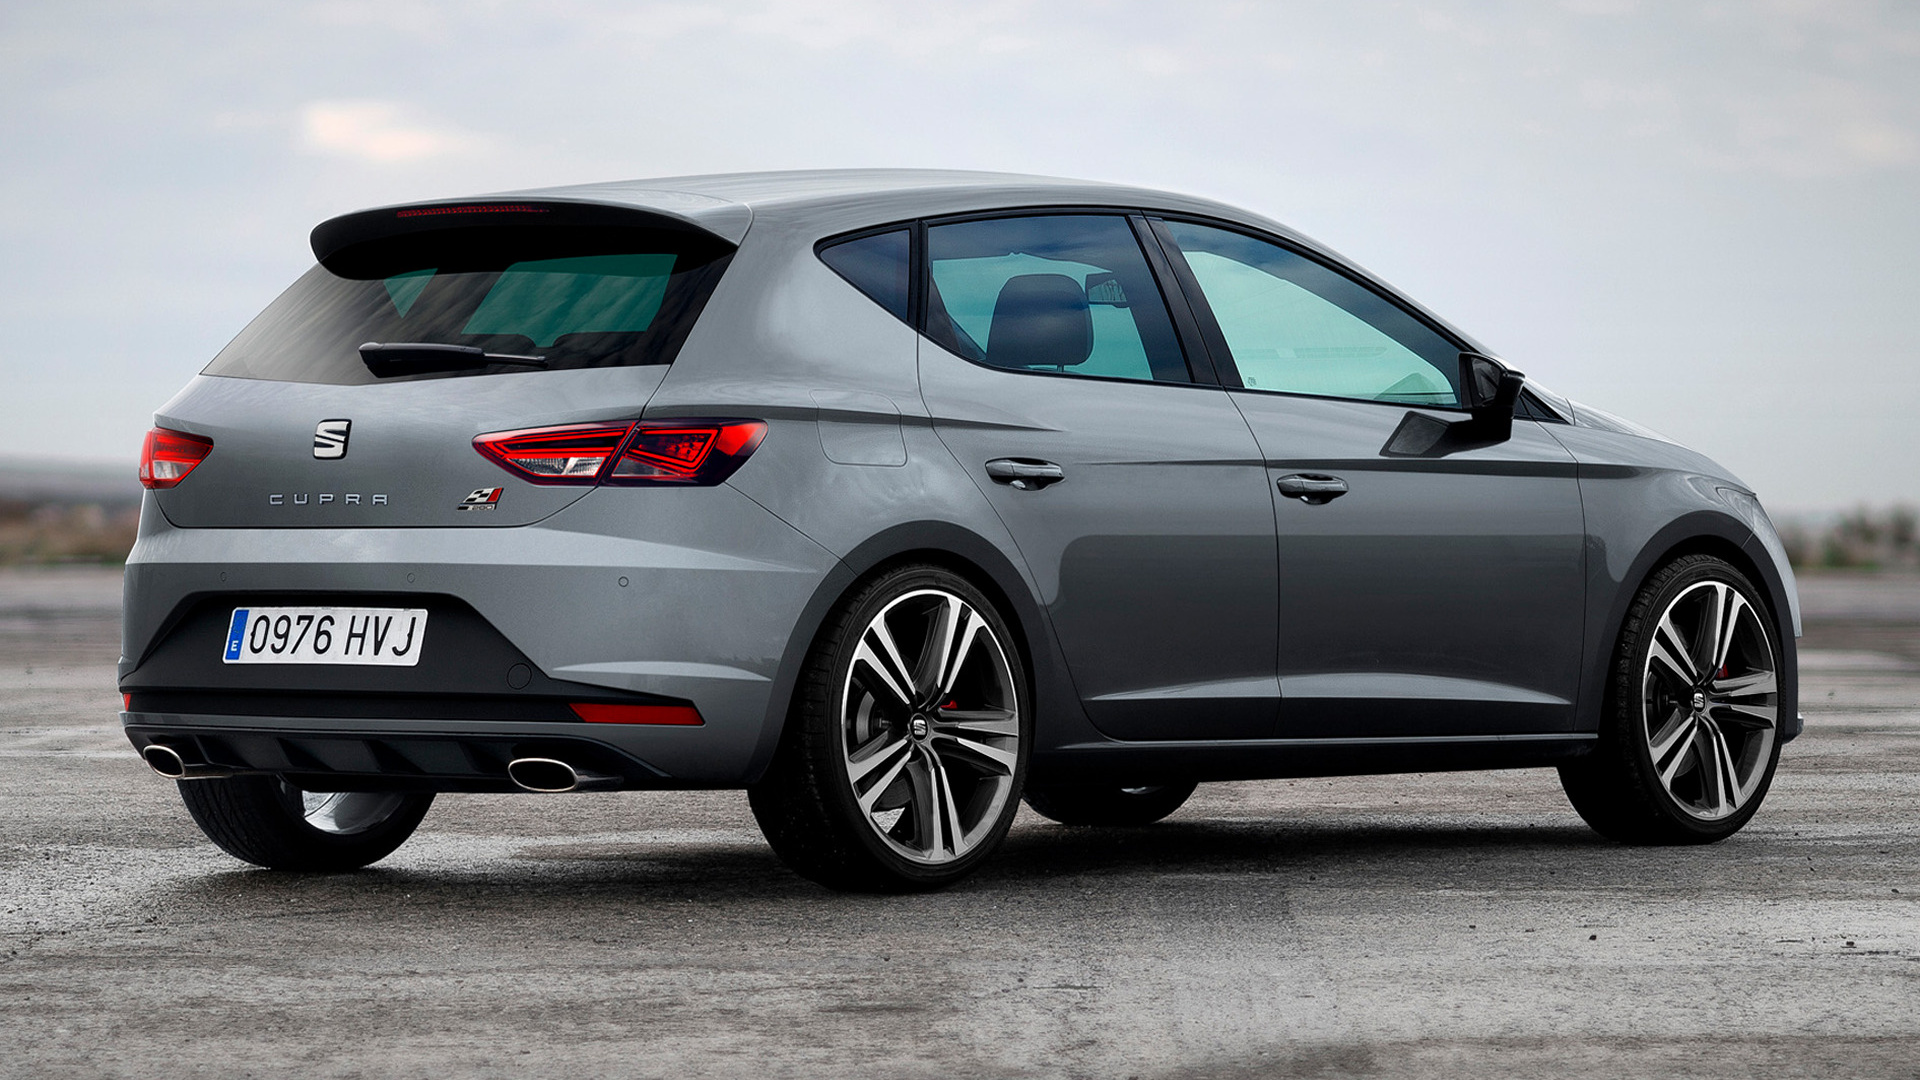 seat leon cupra 280 2014 wallpapers and hd images car. Black Bedroom Furniture Sets. Home Design Ideas